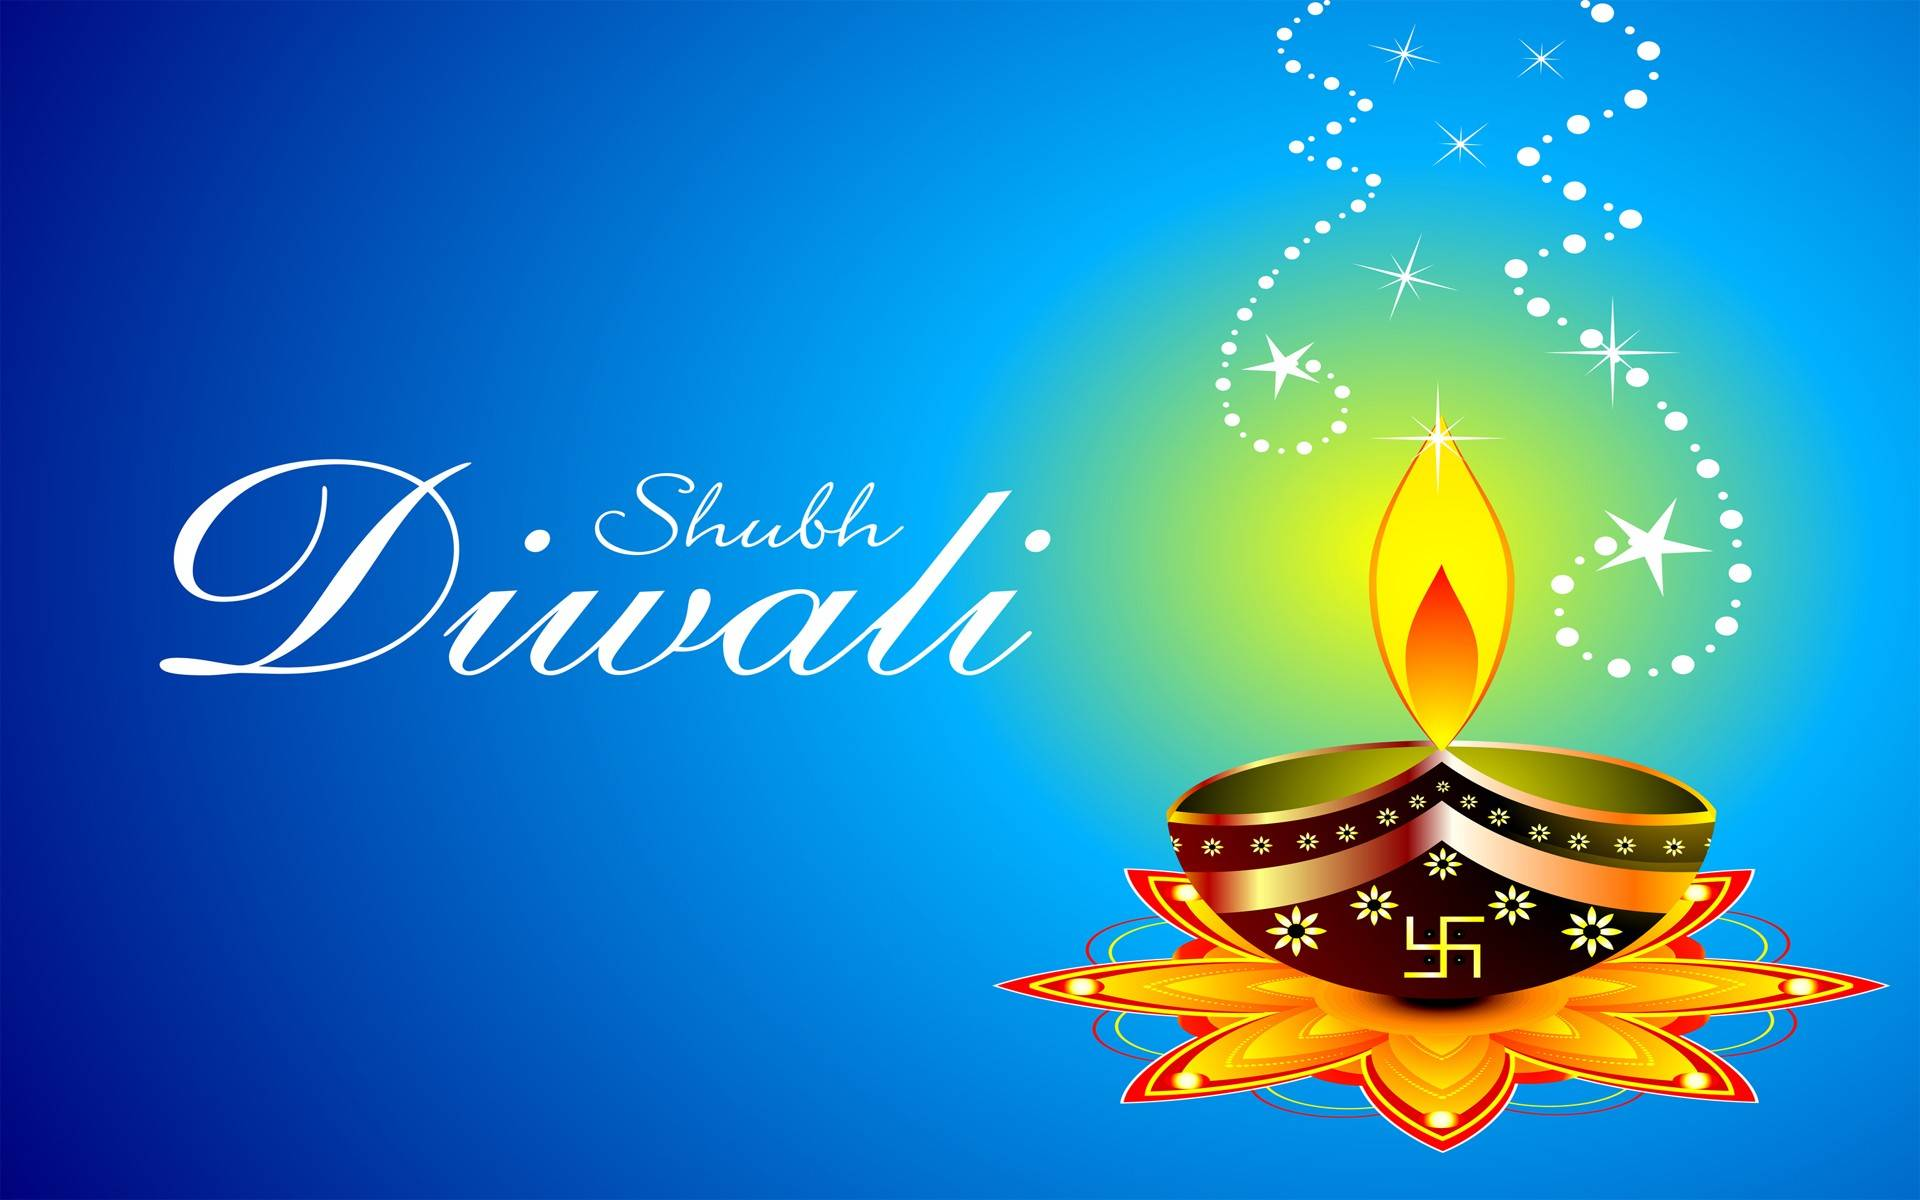 Happy Diwali hd image for Desktop